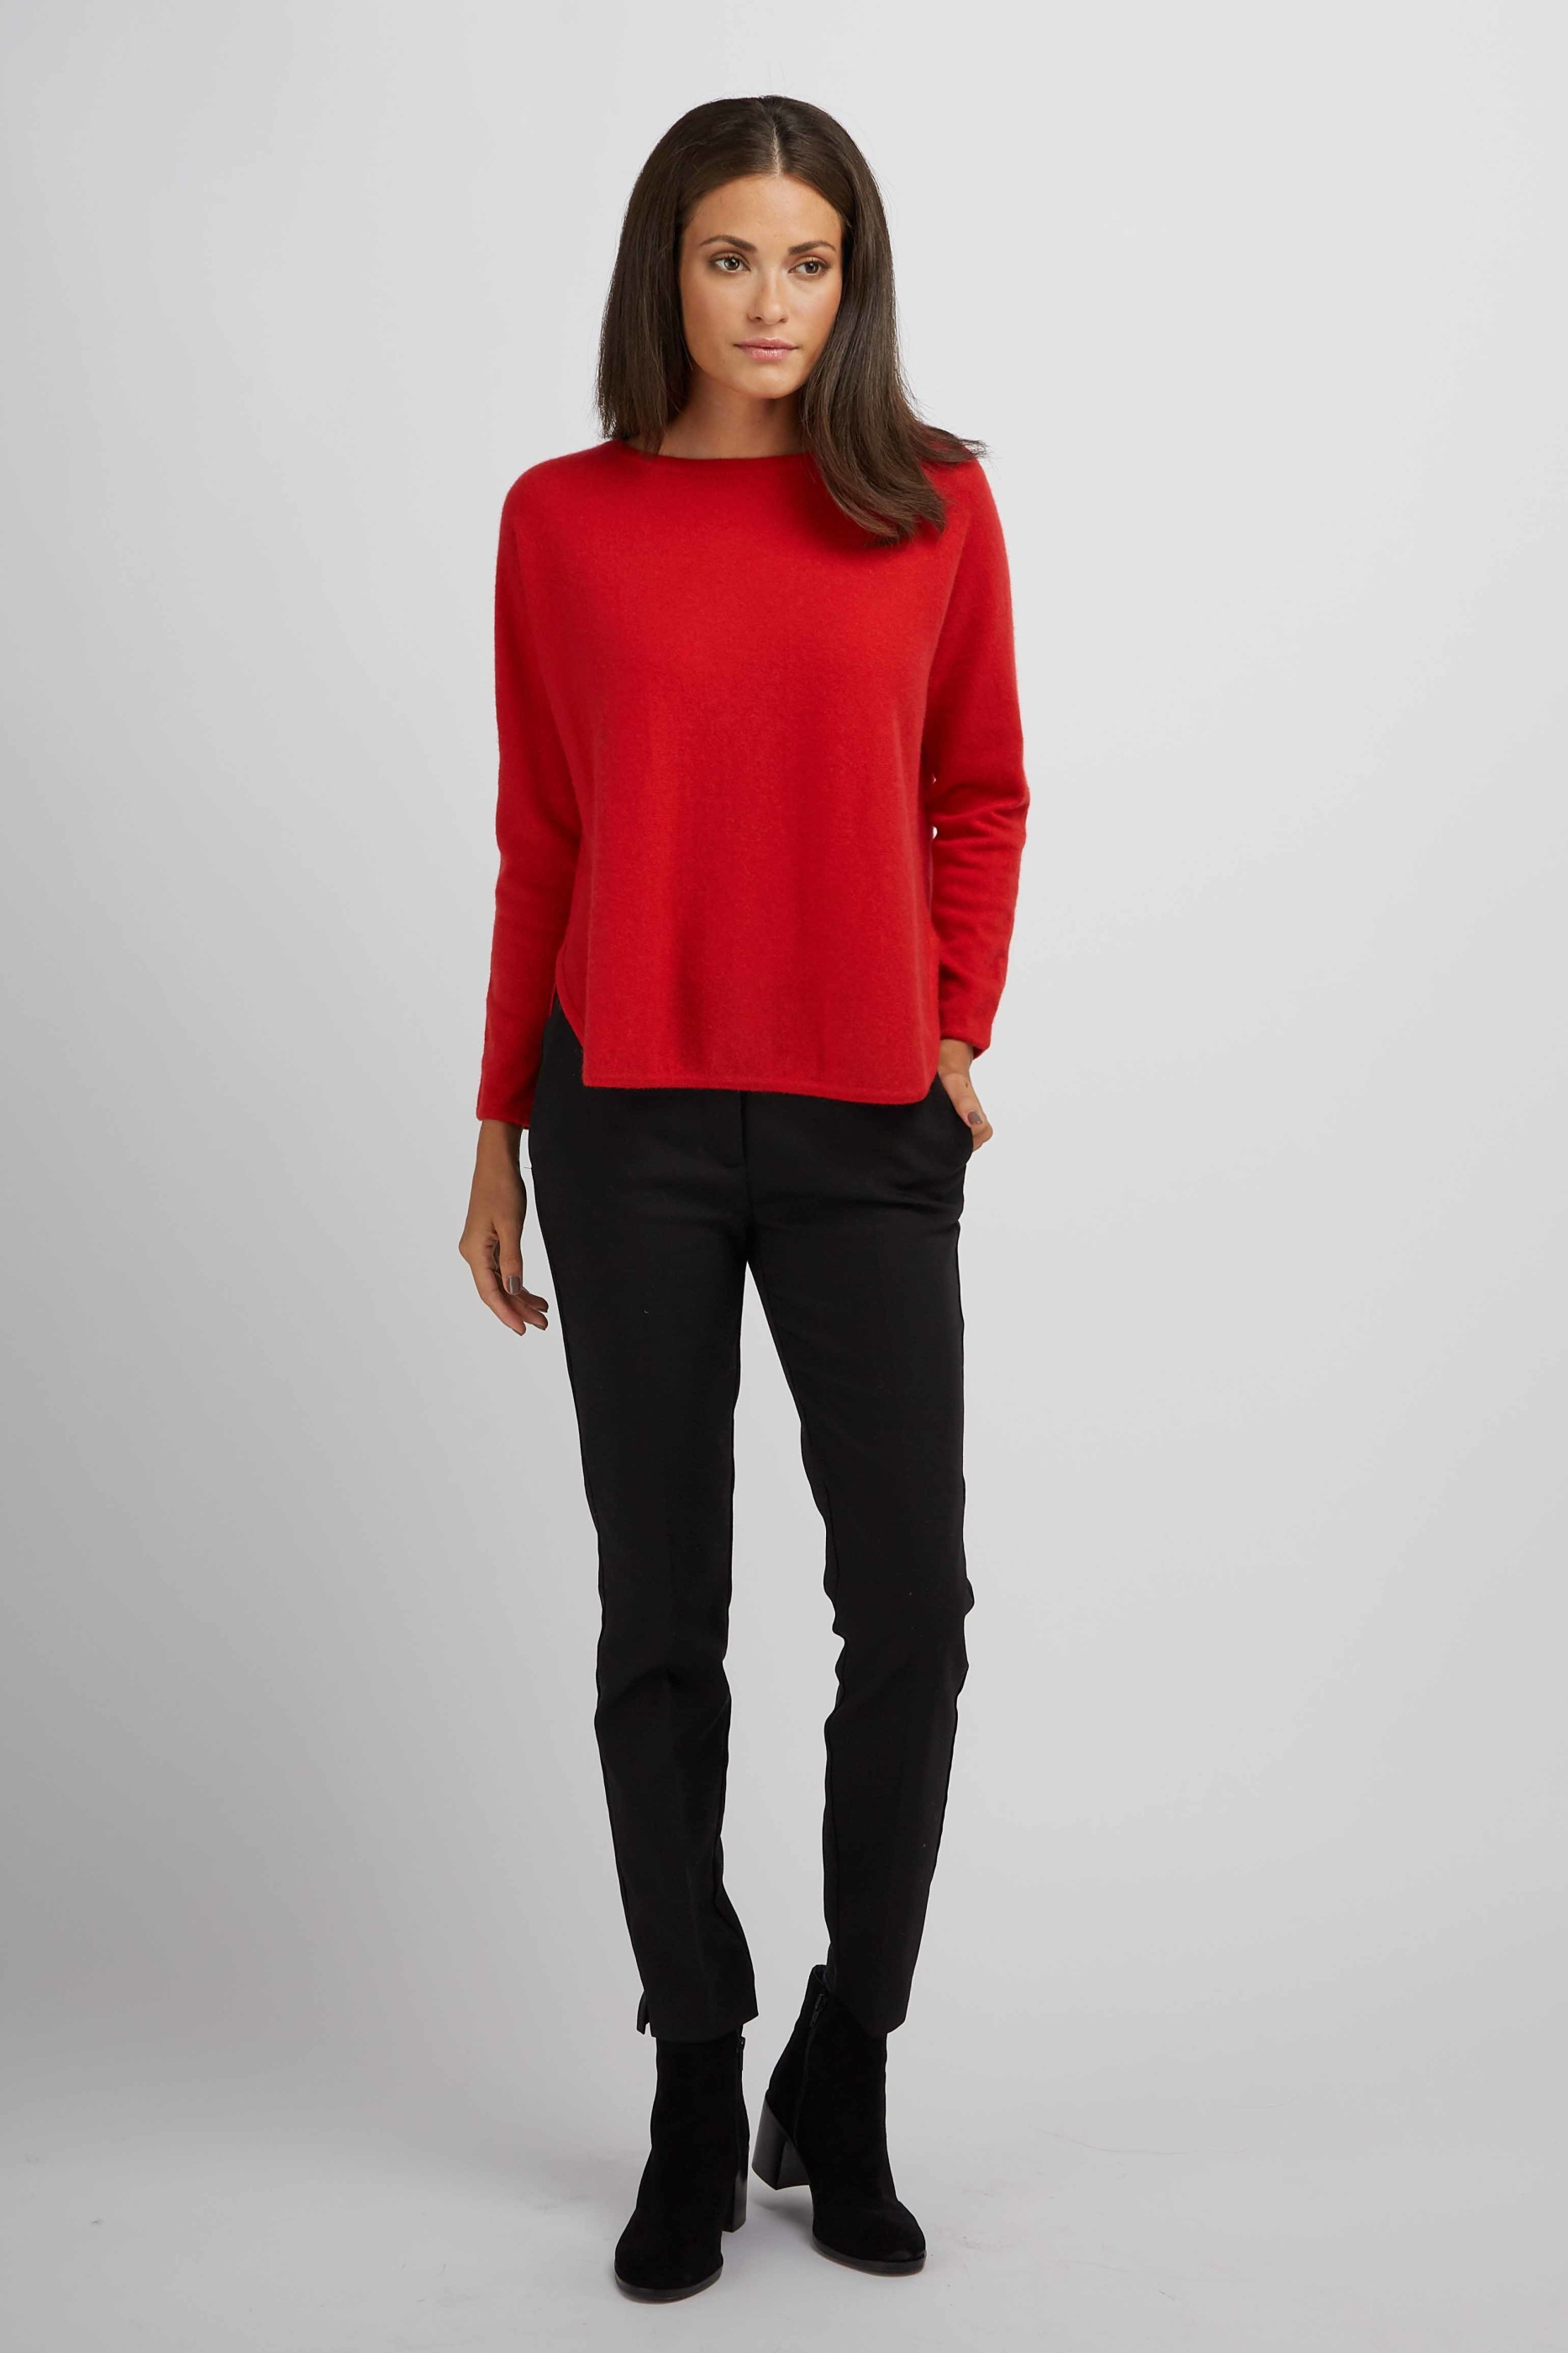 CurvedSweater_Red_1